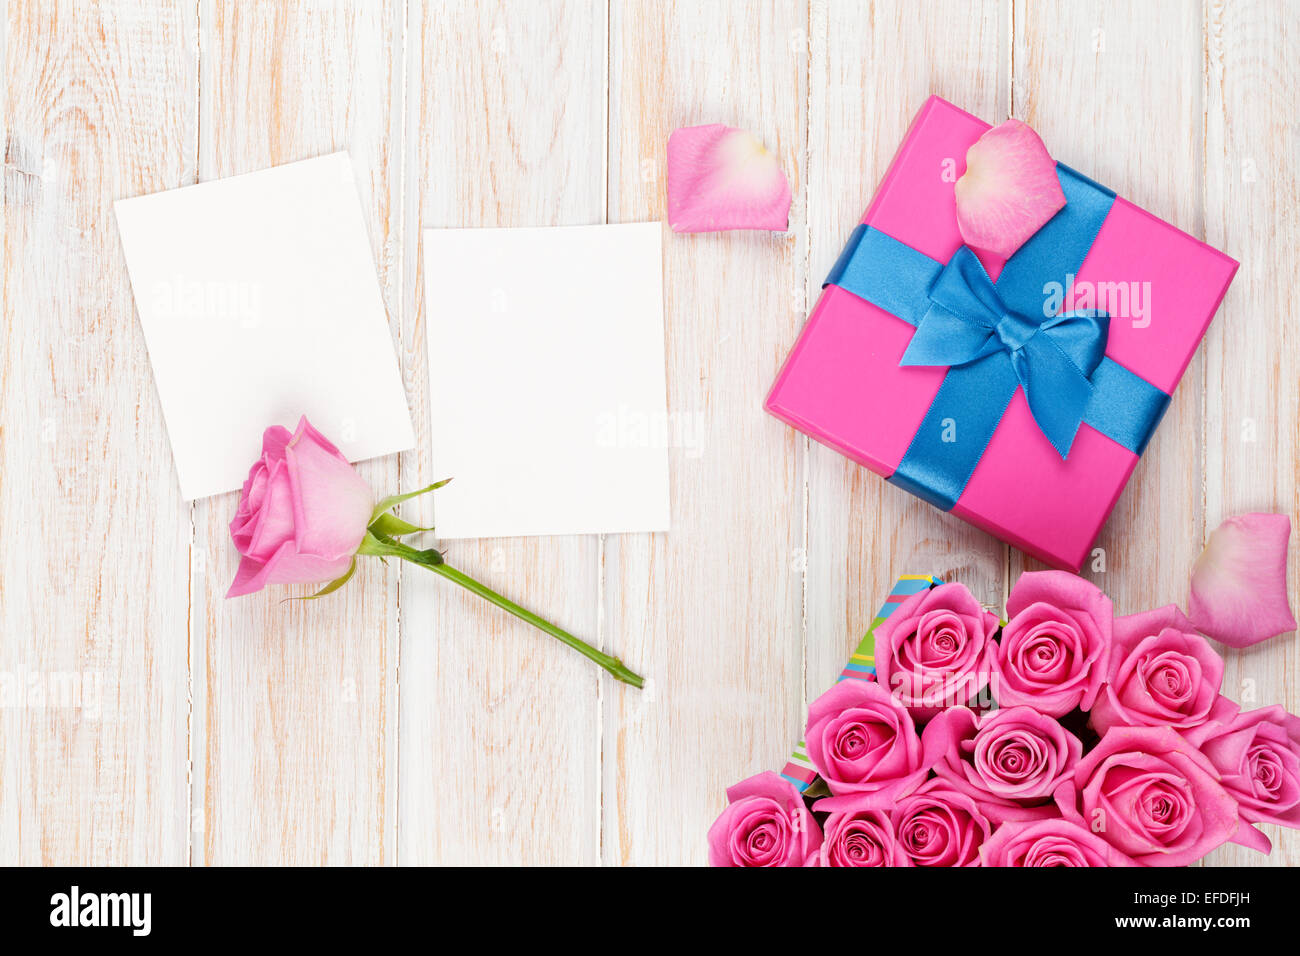 Valentines Day Background With Gift Box Full Of Pink Roses And Two